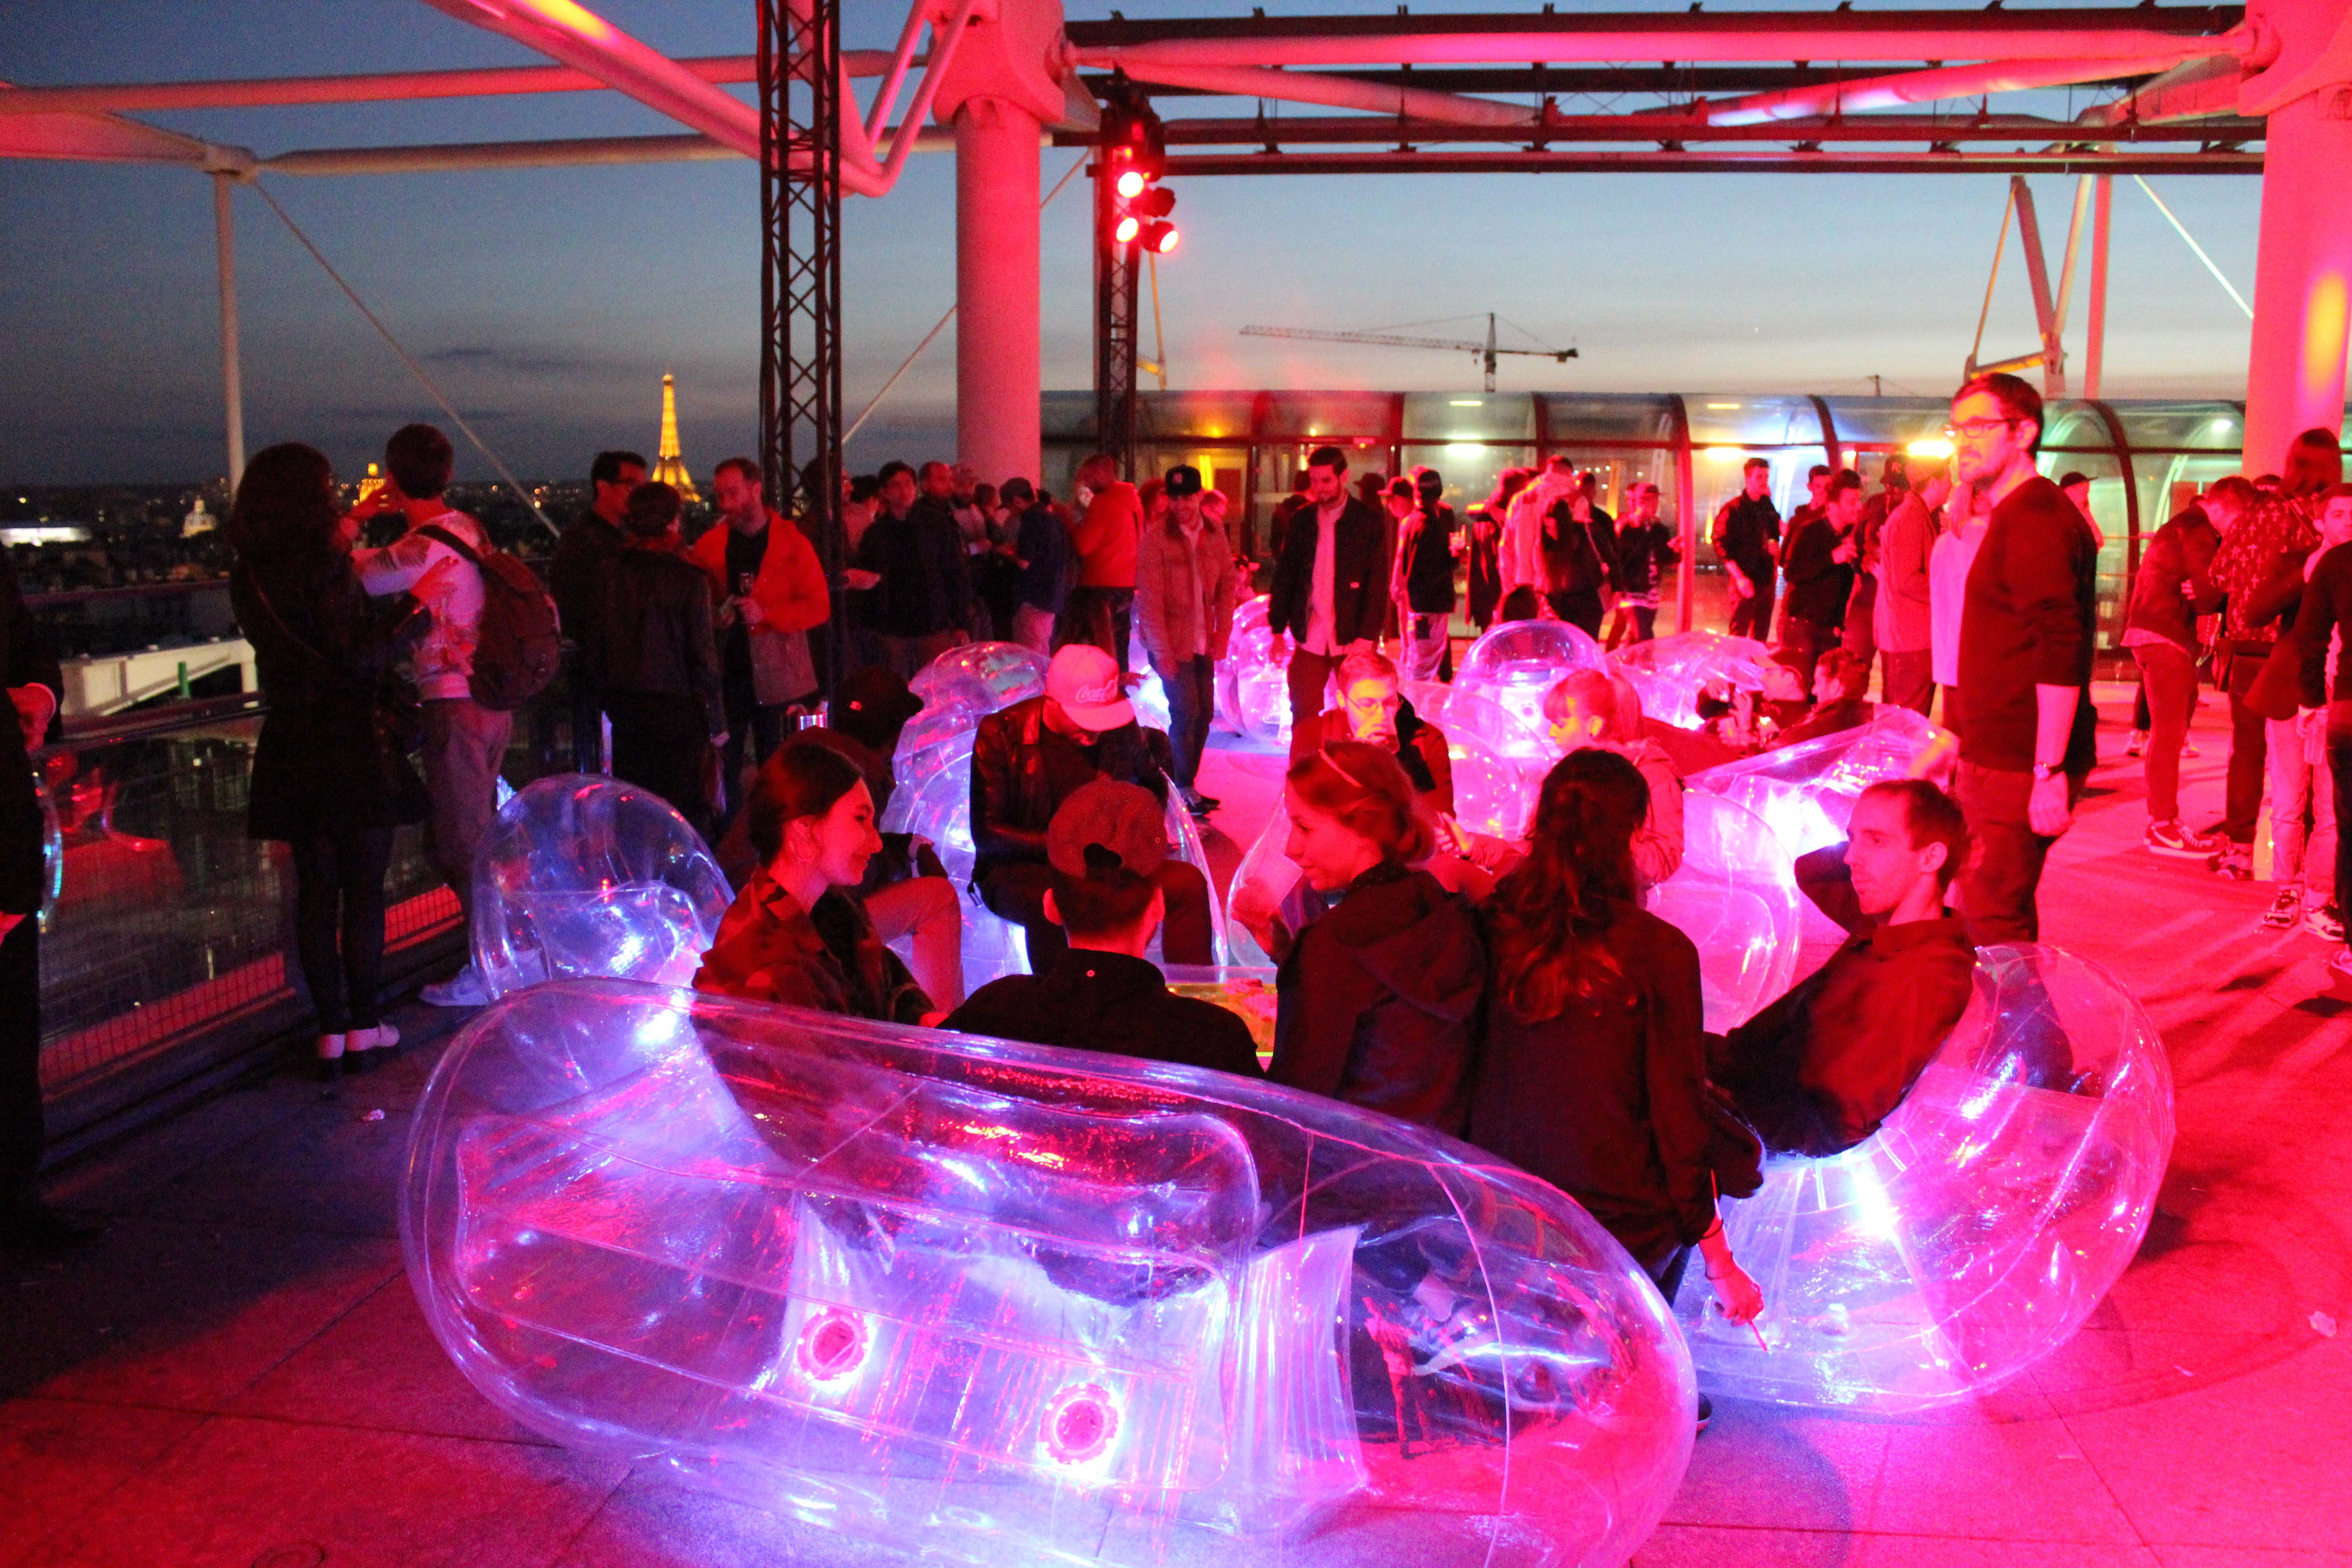 inflatable-furniture-illuminated.jpg